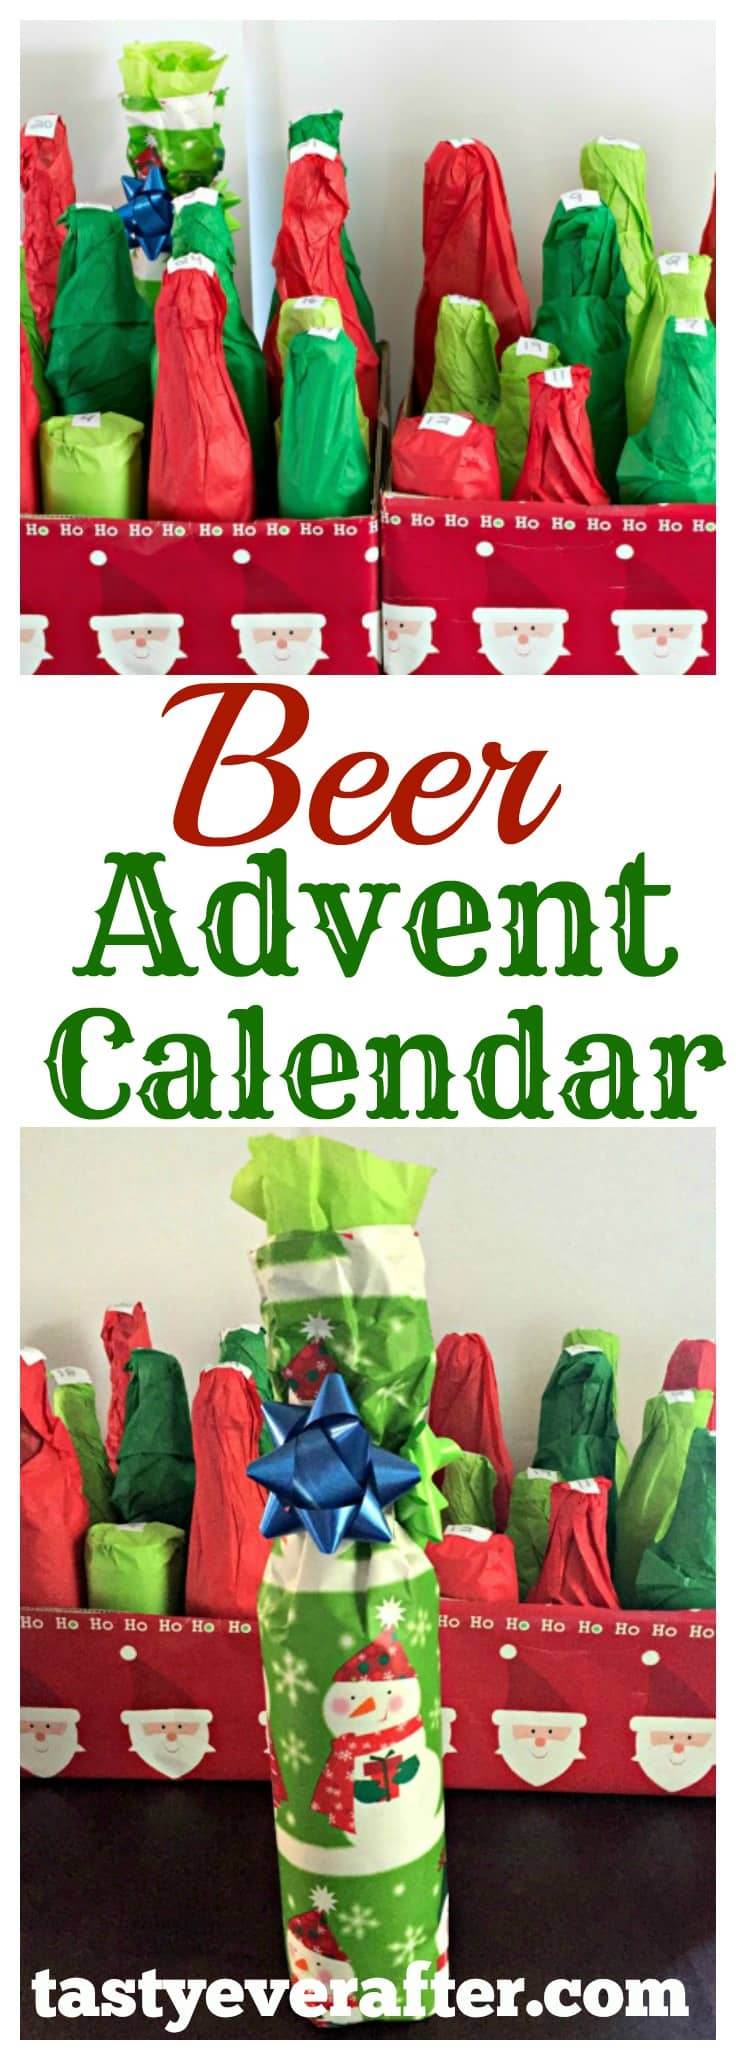 Beer Advent Calendar Pinterest PIN